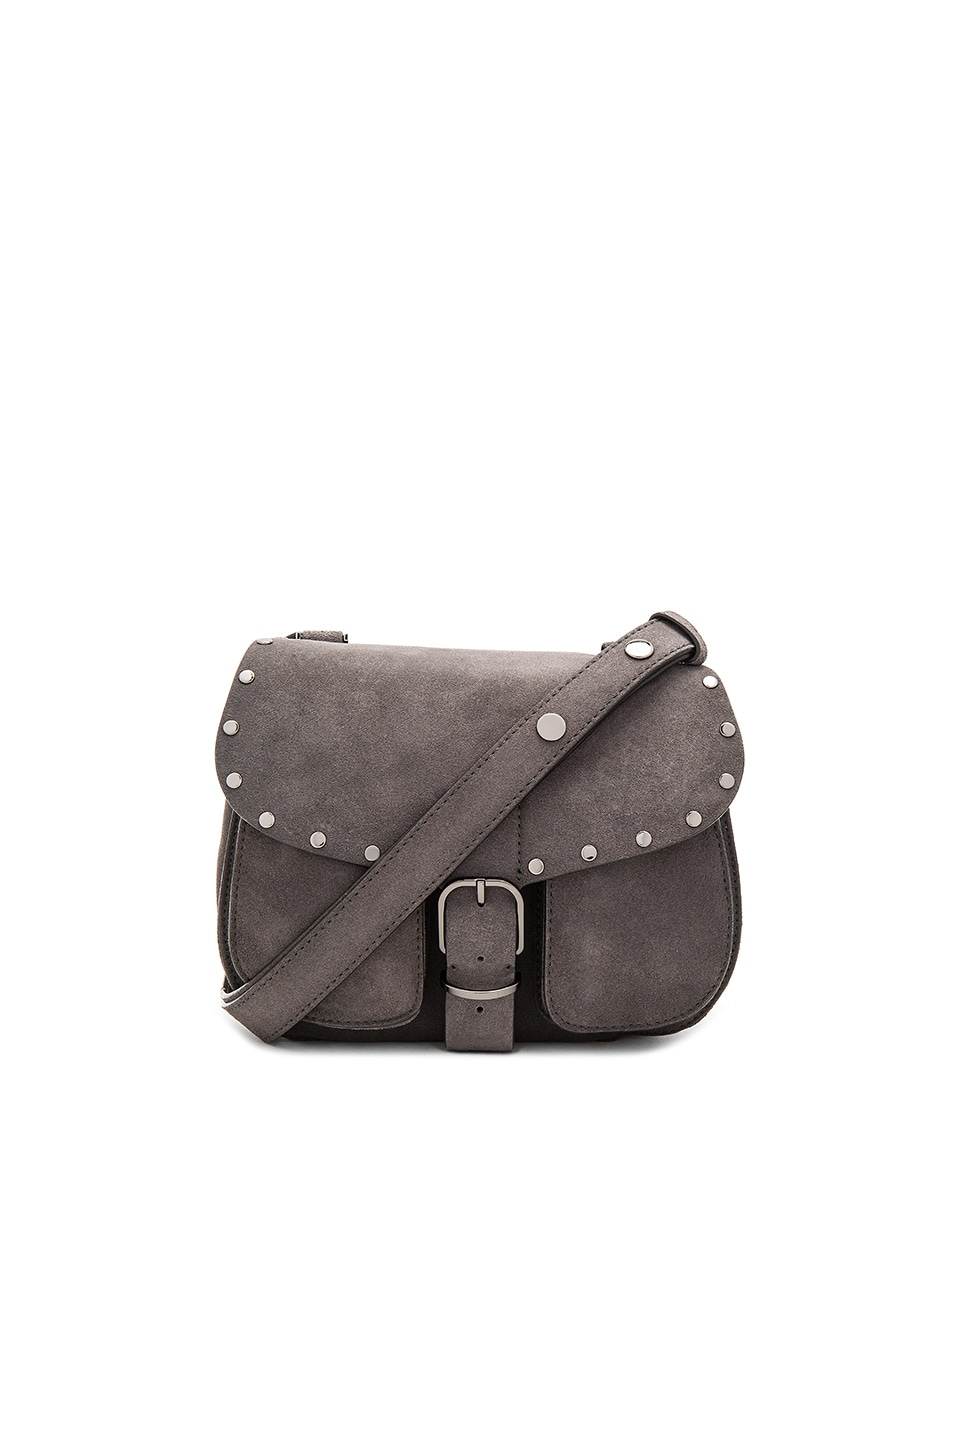 Biker Saddle Bag by Rebecca Minkoff